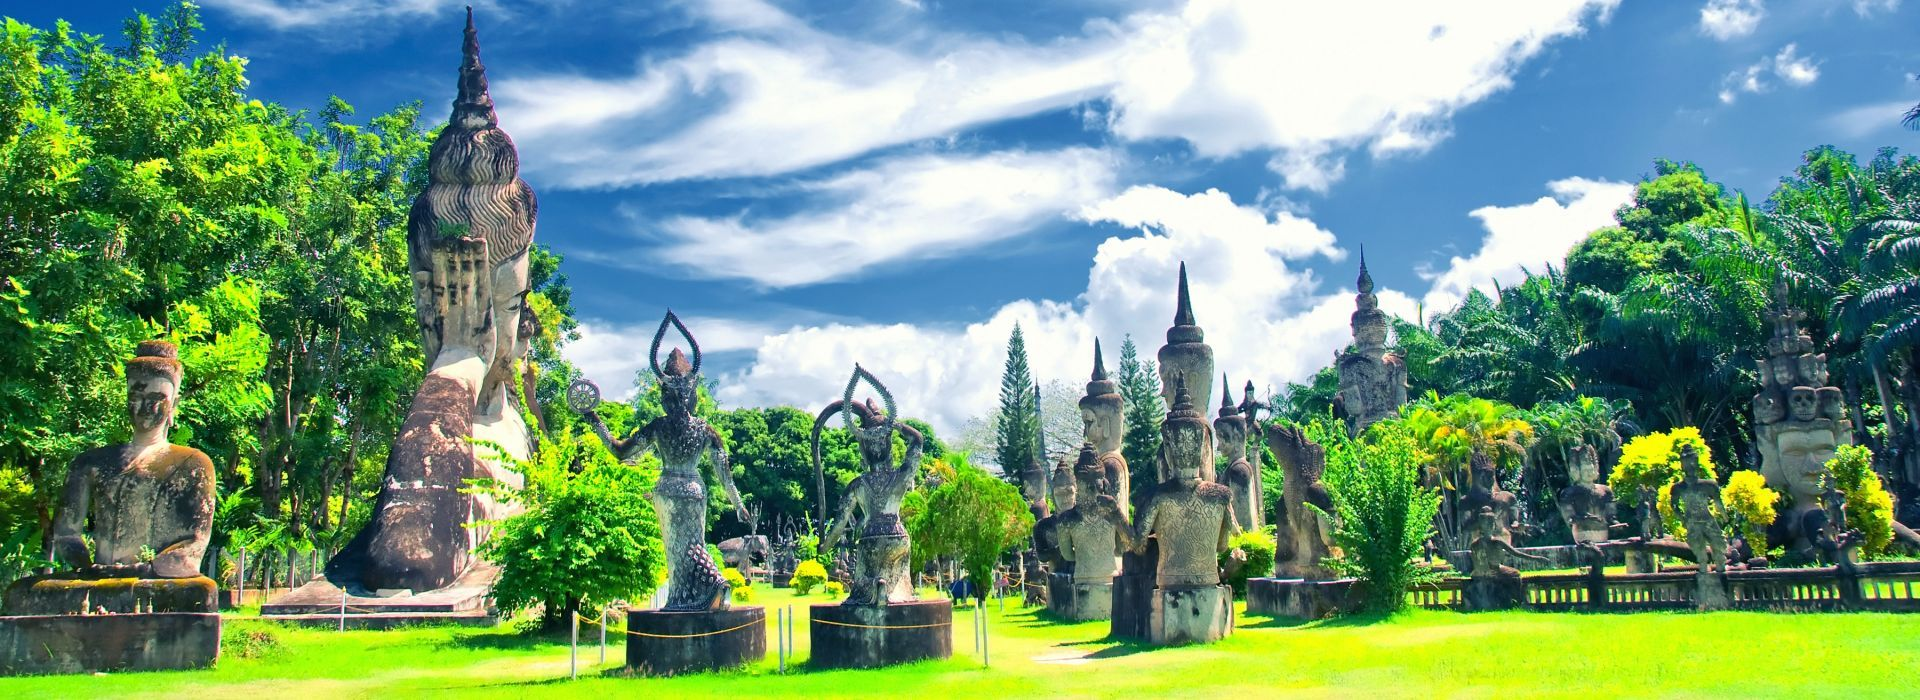 Sightseeing Tours in Laos